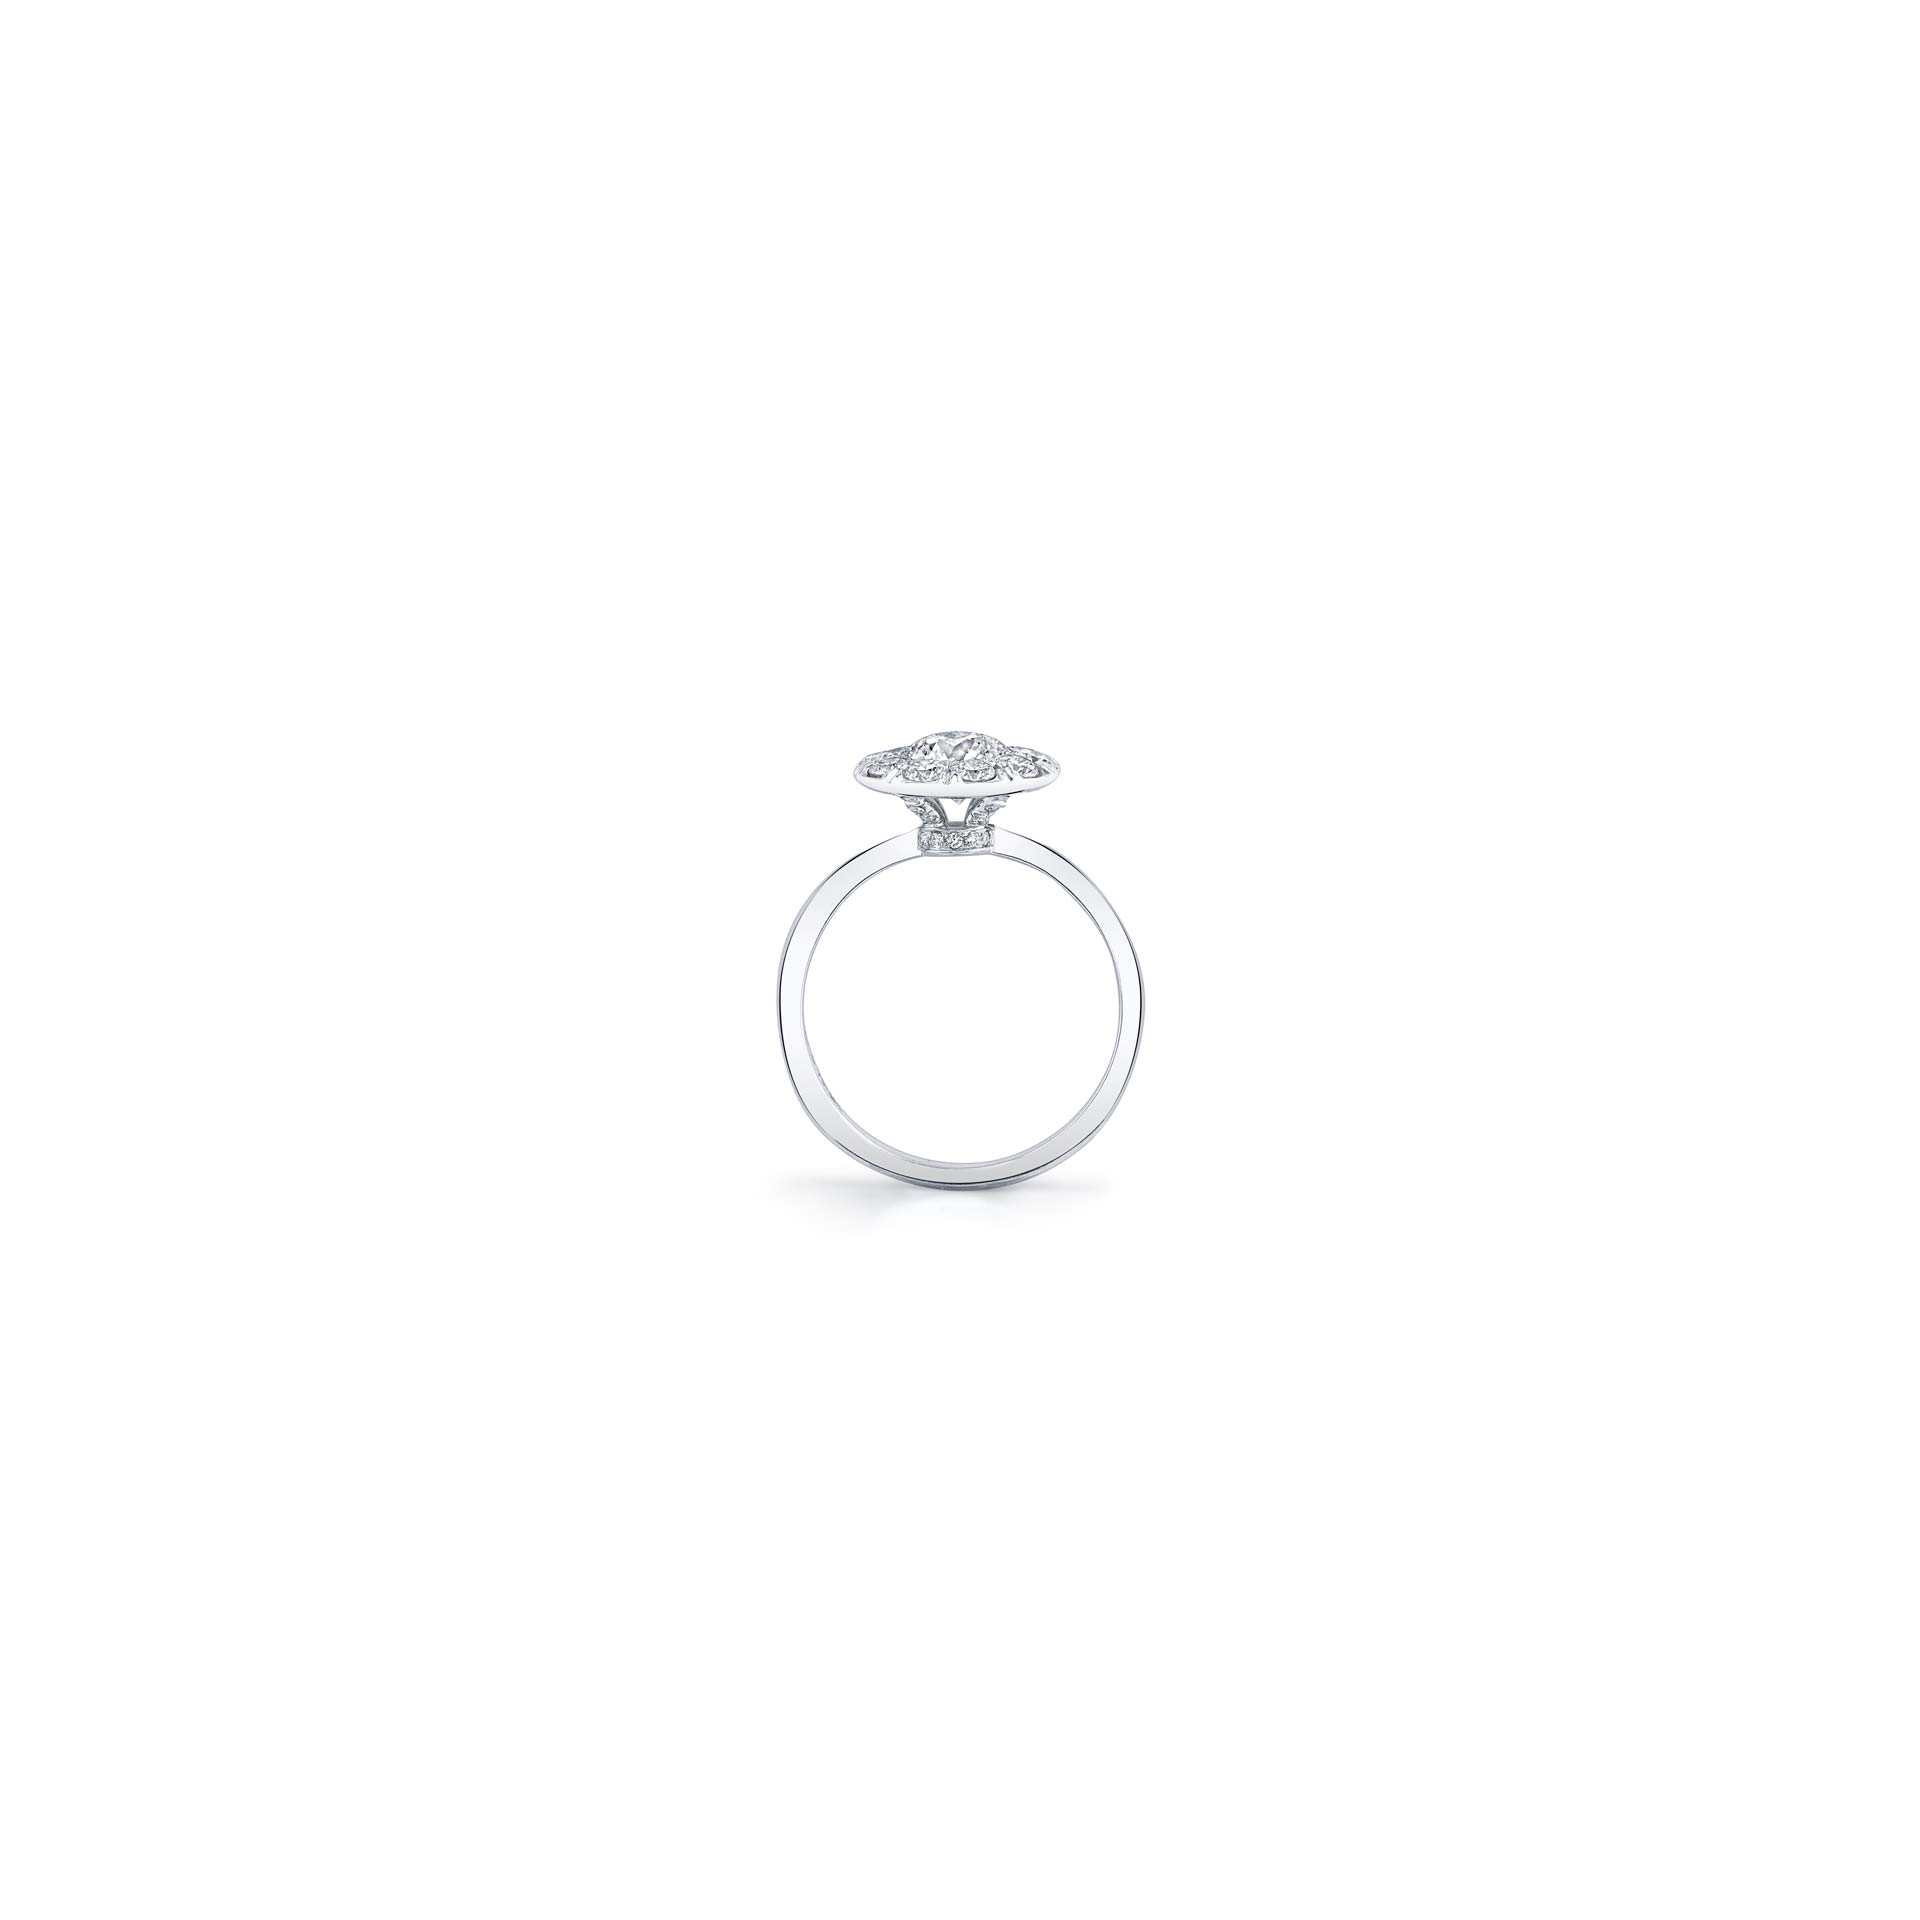 Colette Floating Round Brilliant Seamless Solitaire® Engagement Ring with a sold band in 18k White Gold Standing View by Oui by Jean Dousset